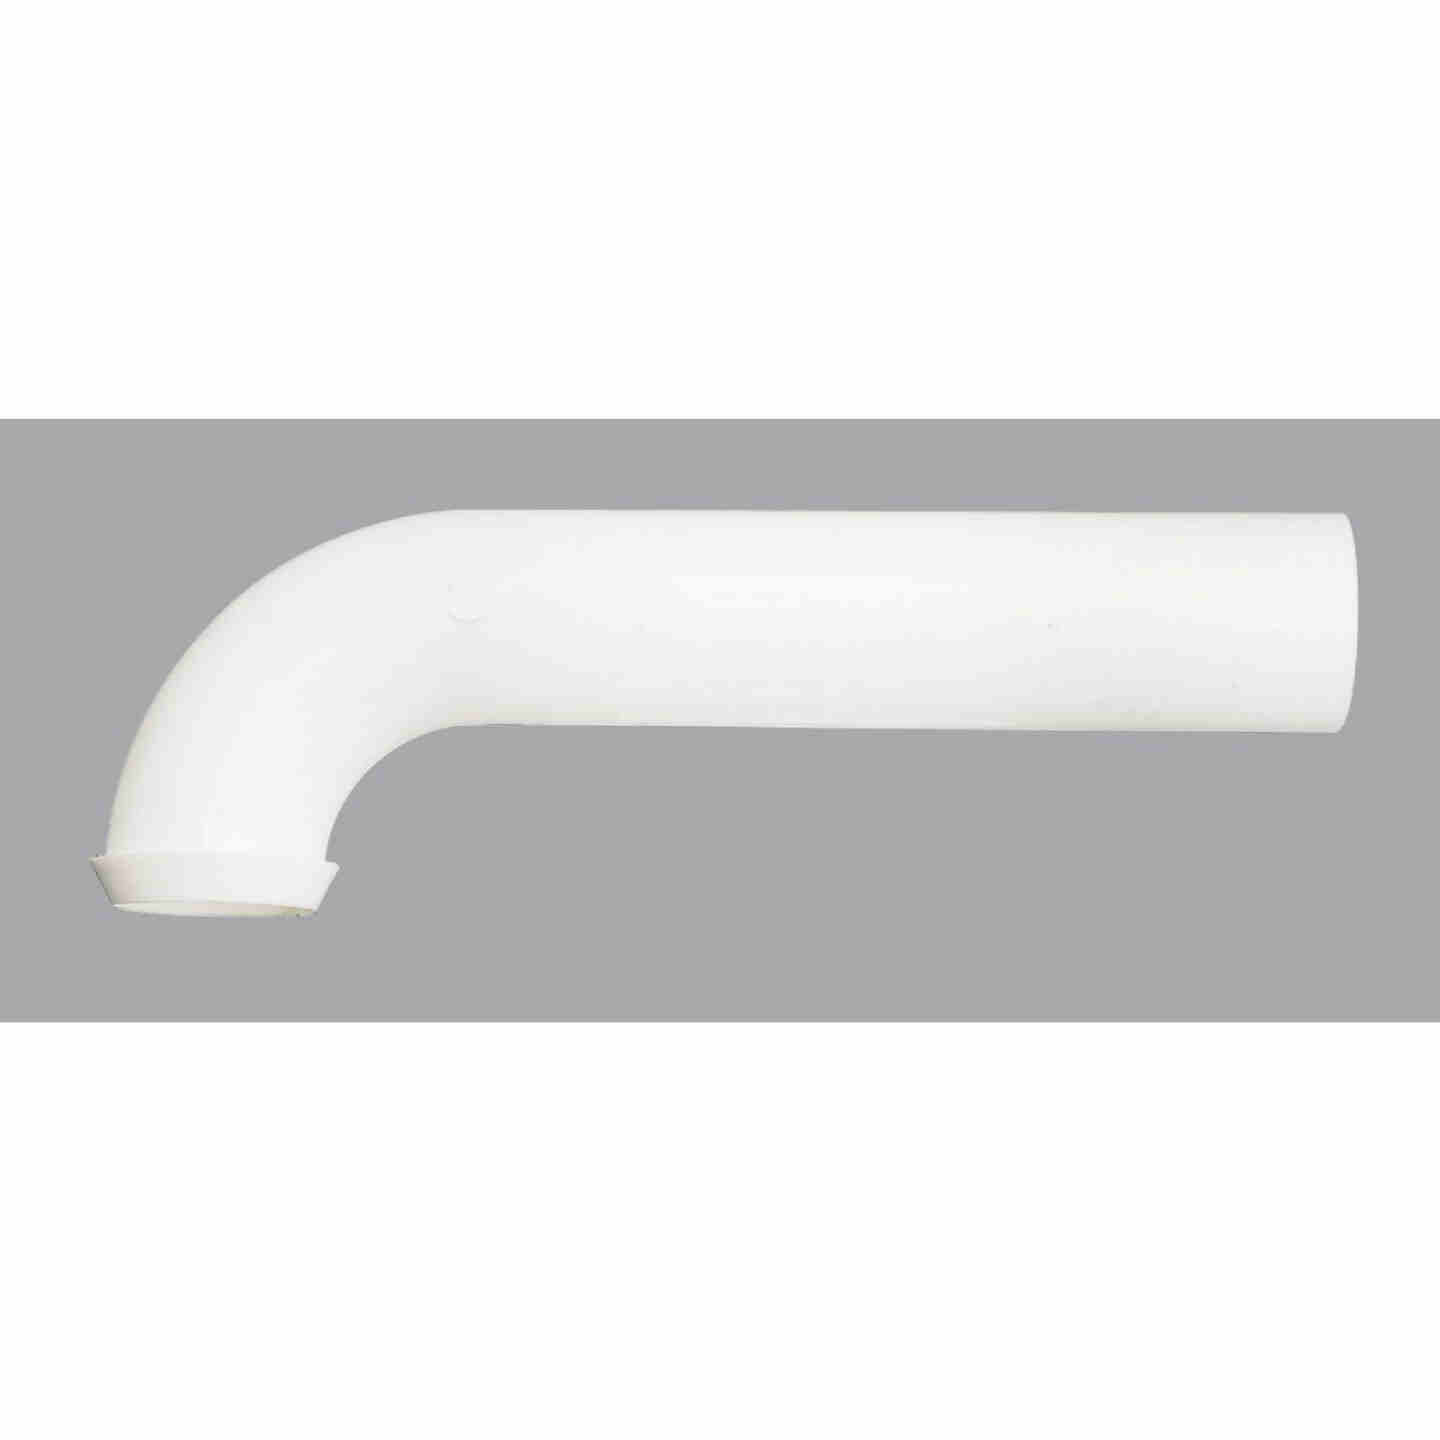 Do it 1-1/2 In. x 7 In. White Plastic Wall Tube Image 1